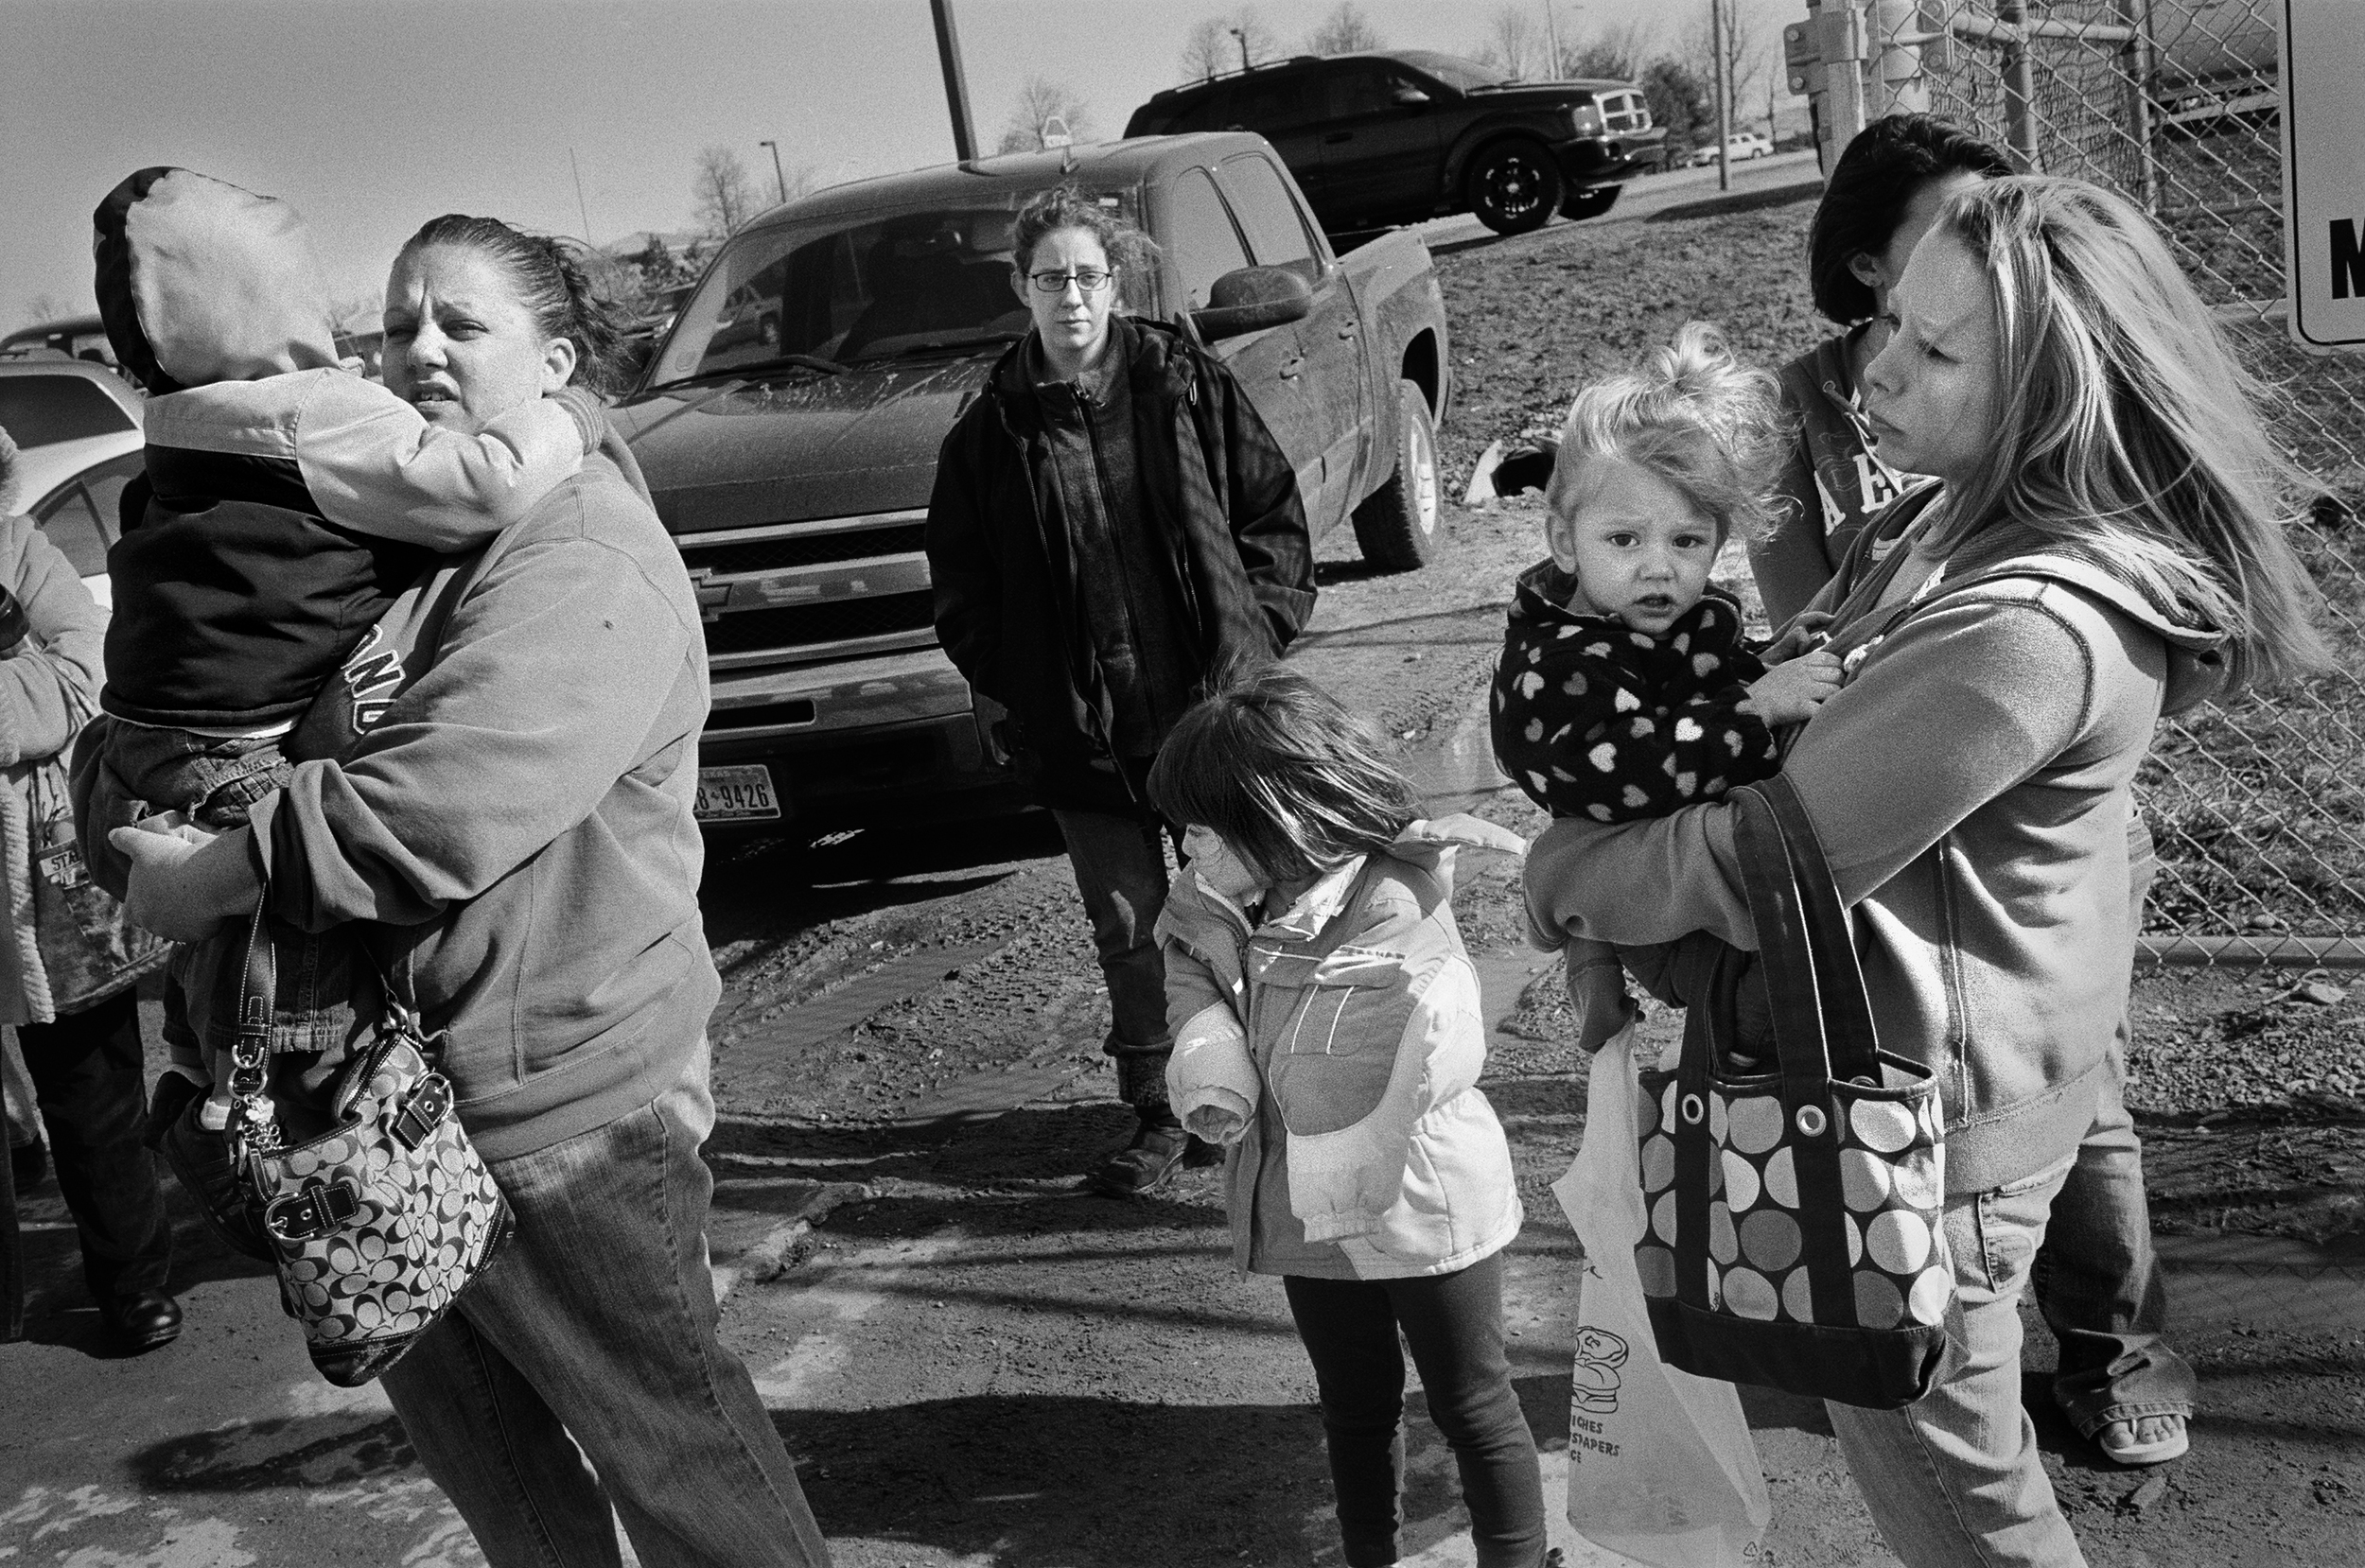 Wives and their children watch their husbands leave for Afghanistan at Fort Drum, New York, 2011.